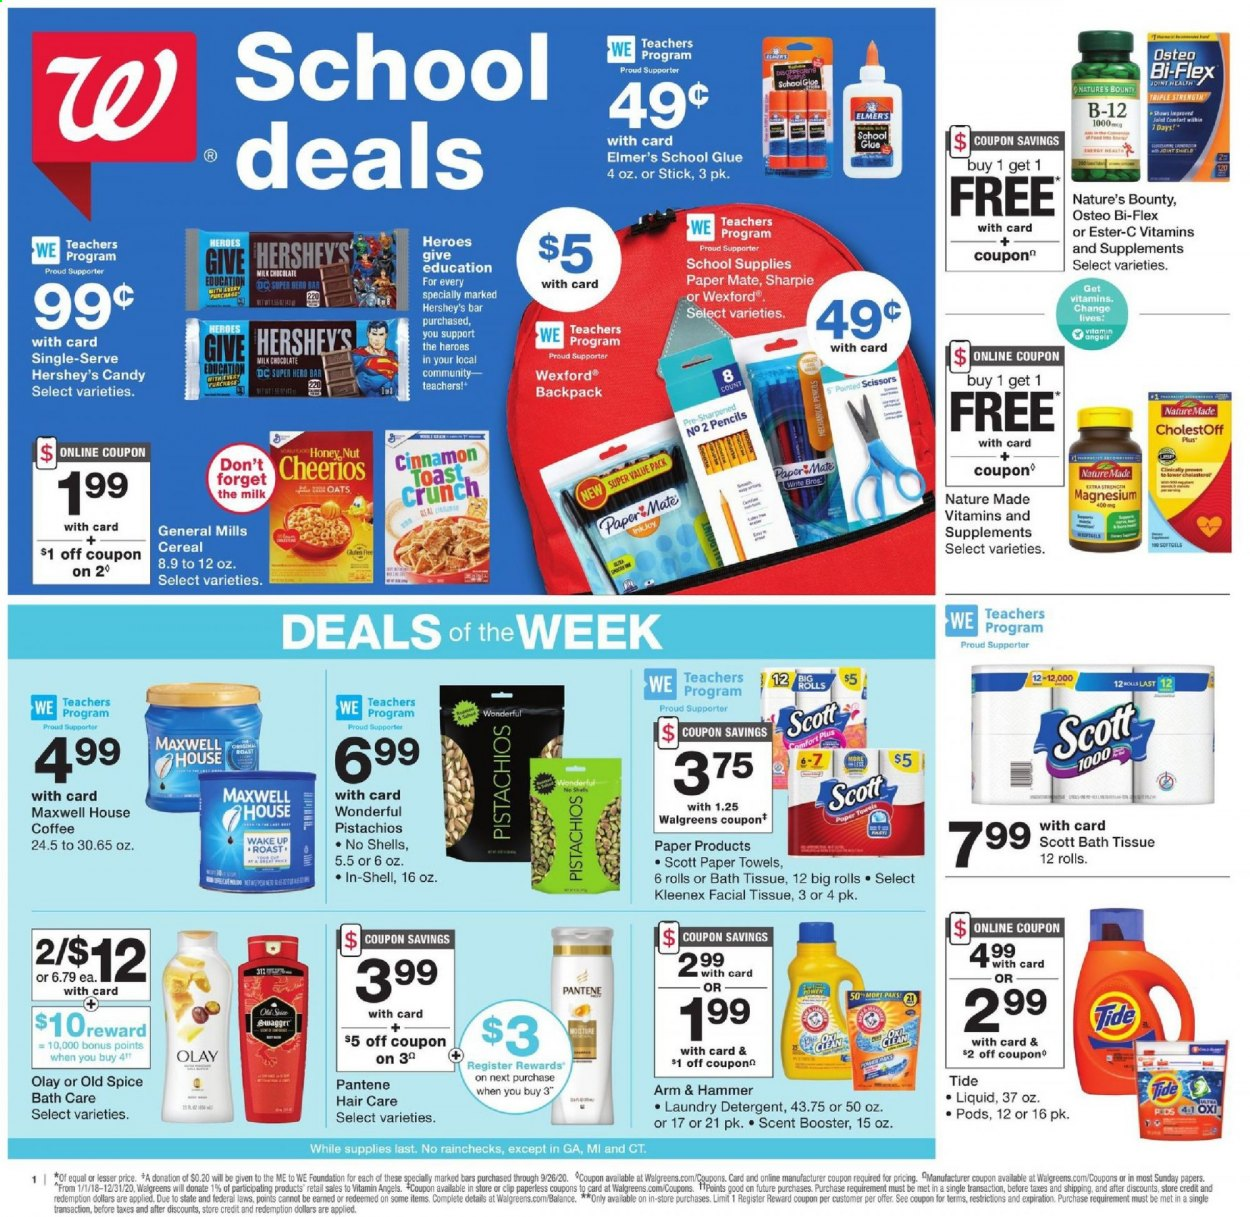 Walgreens Flyer - 08.02.2020 - 08.08.2020 - Sales products - arm & hammer, backpack, bath tissue, cereals, coffee, detergent, ester-c, kleenex, magnesium, mate, maxwell house, milk chocolate, moisture, nature made, nature's bounty, scott, shell, shield, stick, tide, honey, cheerios, pantene, paper towel, oats, olay, old spice, osteo bi-flex, chocolate, candy, glue, hammer, cereal, scissors, bounty, pencils, liquid, extra strength, laundry detergent, roast, foundation, paper towels. Page 1.